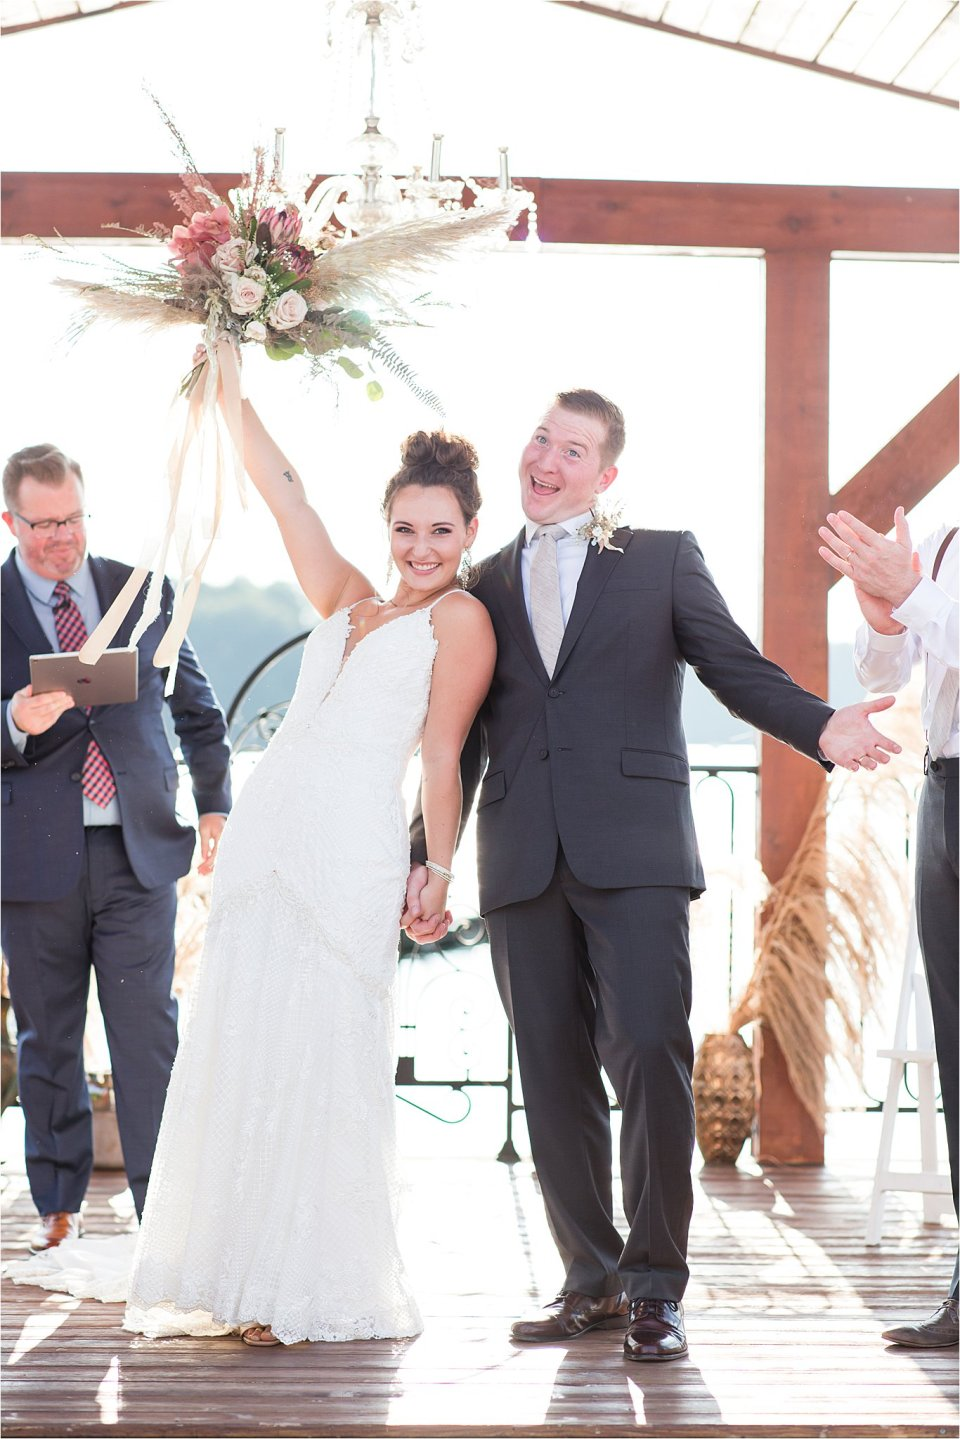 bride and groom just married at Egyptian Hills Resort wedding